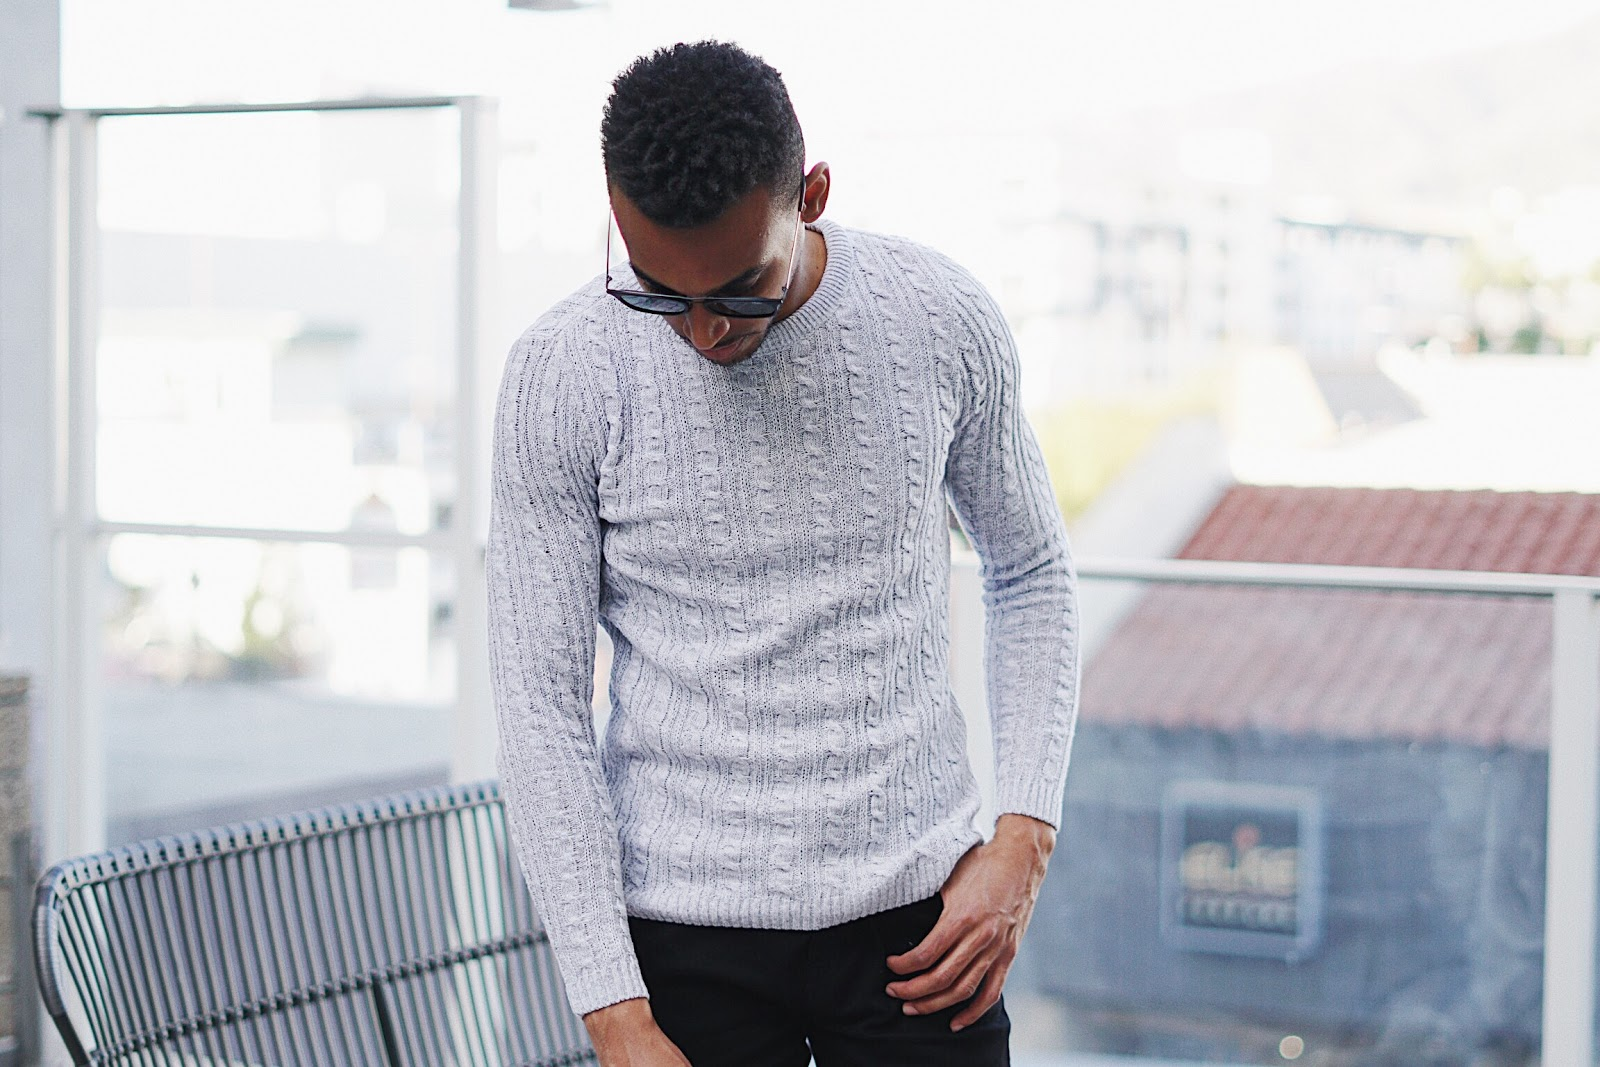 sweaters, knitwear, mens fashion blogger, how to style, for men, sweater for men, affordable, fashion guide, trends, fashion trends, 2018 winter fashion, California, la blogger, quay, asos sweater, quay sunglasses for men, quay Australia, asos shoes, asos jeans, Pinterest, ootd Inspo, cable knit sweater